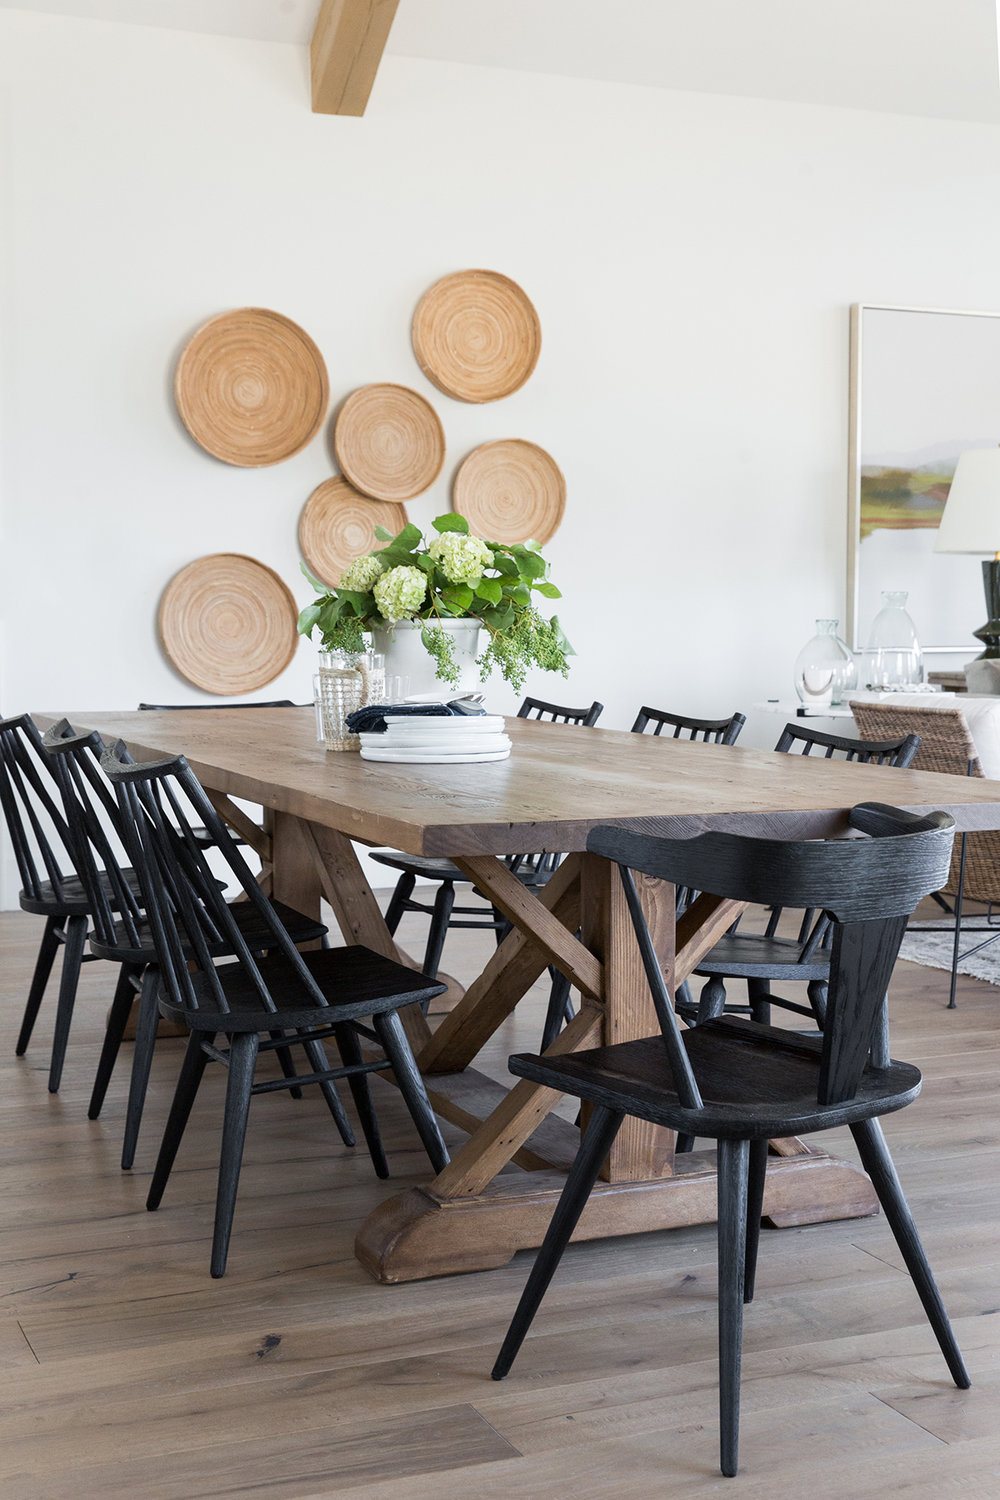 Dining+room+with+exposed+beams,+mismatched+chairs,+black+chairs+in+mountain+home+-+Studio+McGee+Design.jpg